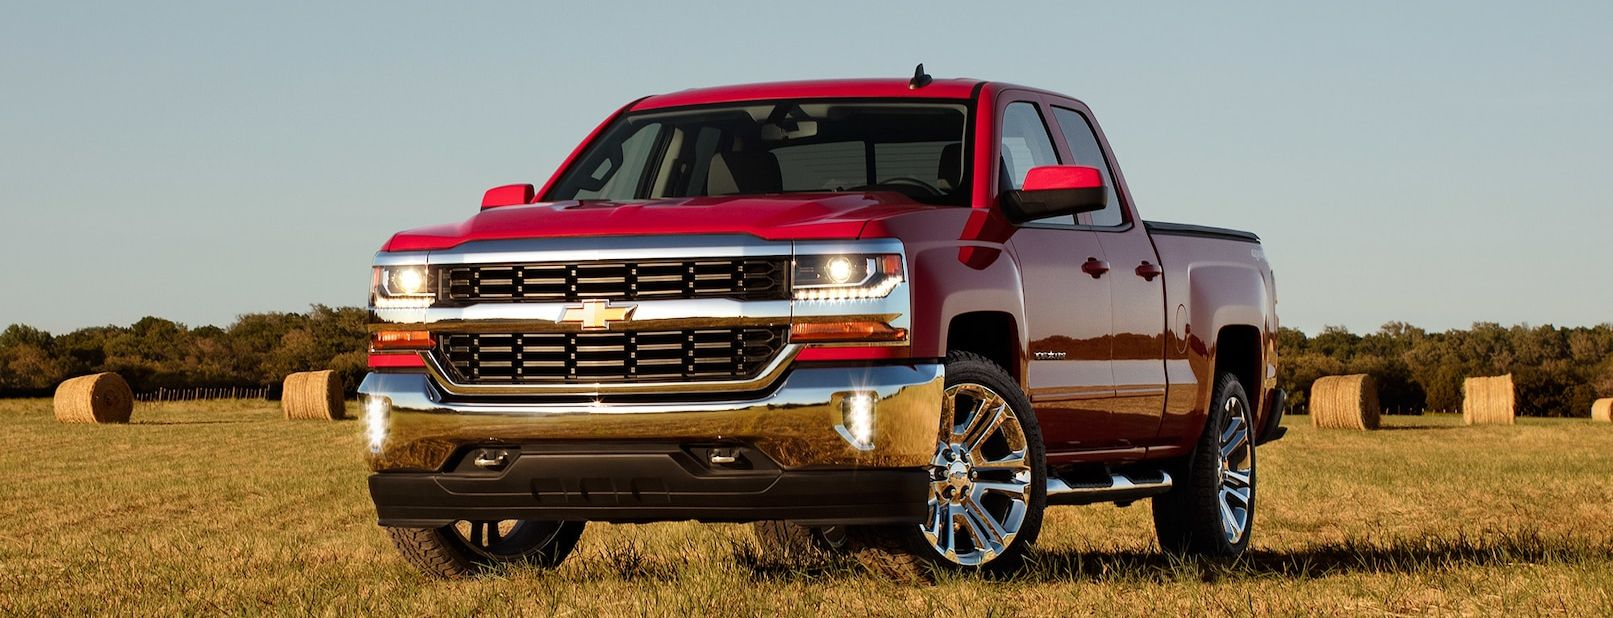 2019 Chevrolet Silverado 1500 Leasing near Sterling, VA